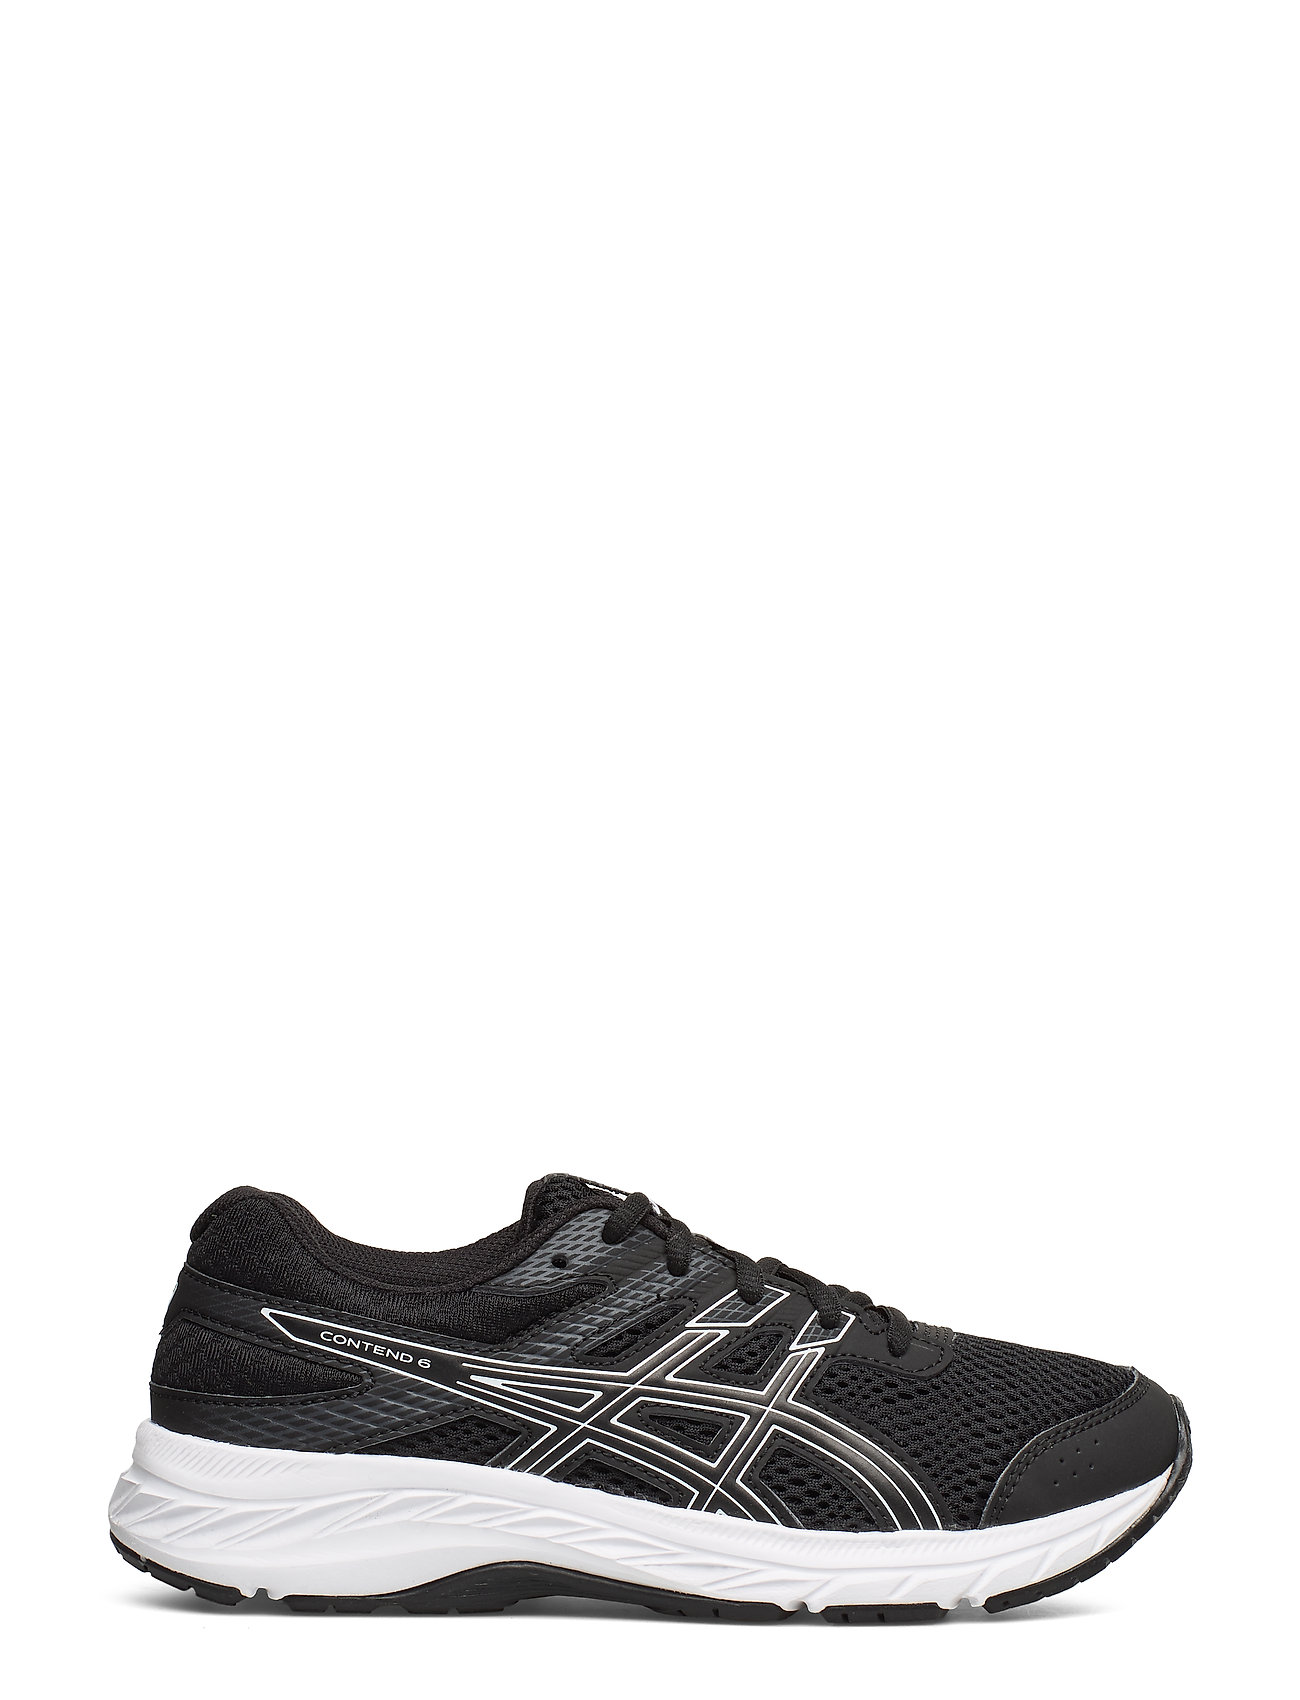 Contend 6 Gs Shoes Sports Shoes Running/training Shoes Sort Asics